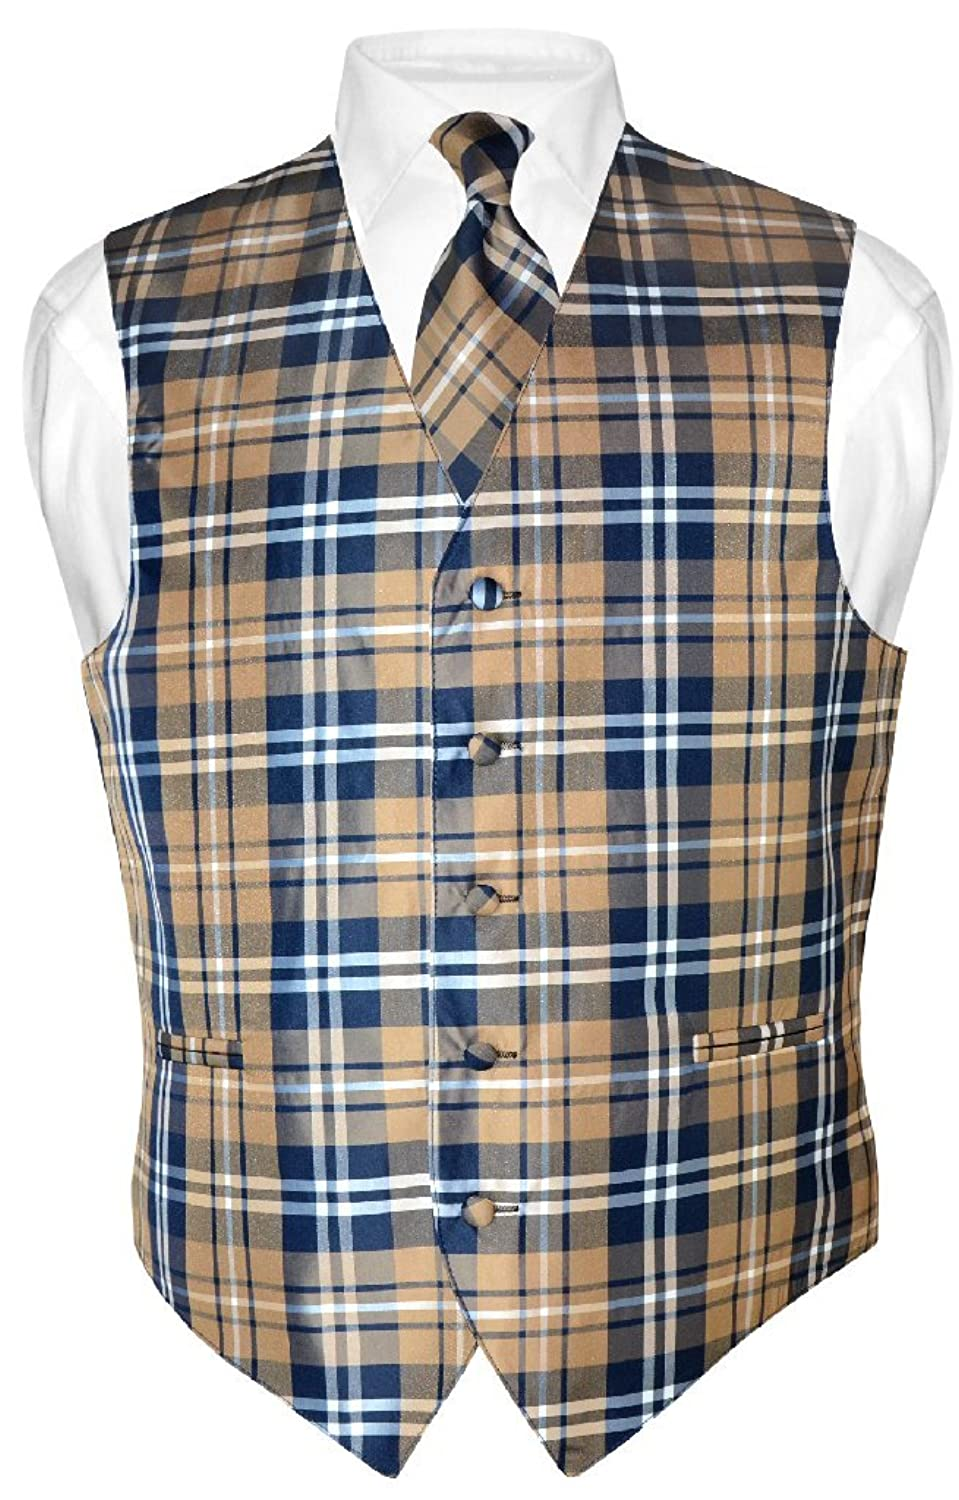 Men's Steampunk Clothing, Costumes, Fashion Mens Plaid Design Dress Vest & NeckTie Navy Brown White Neck Tie Set $26.99 AT vintagedancer.com